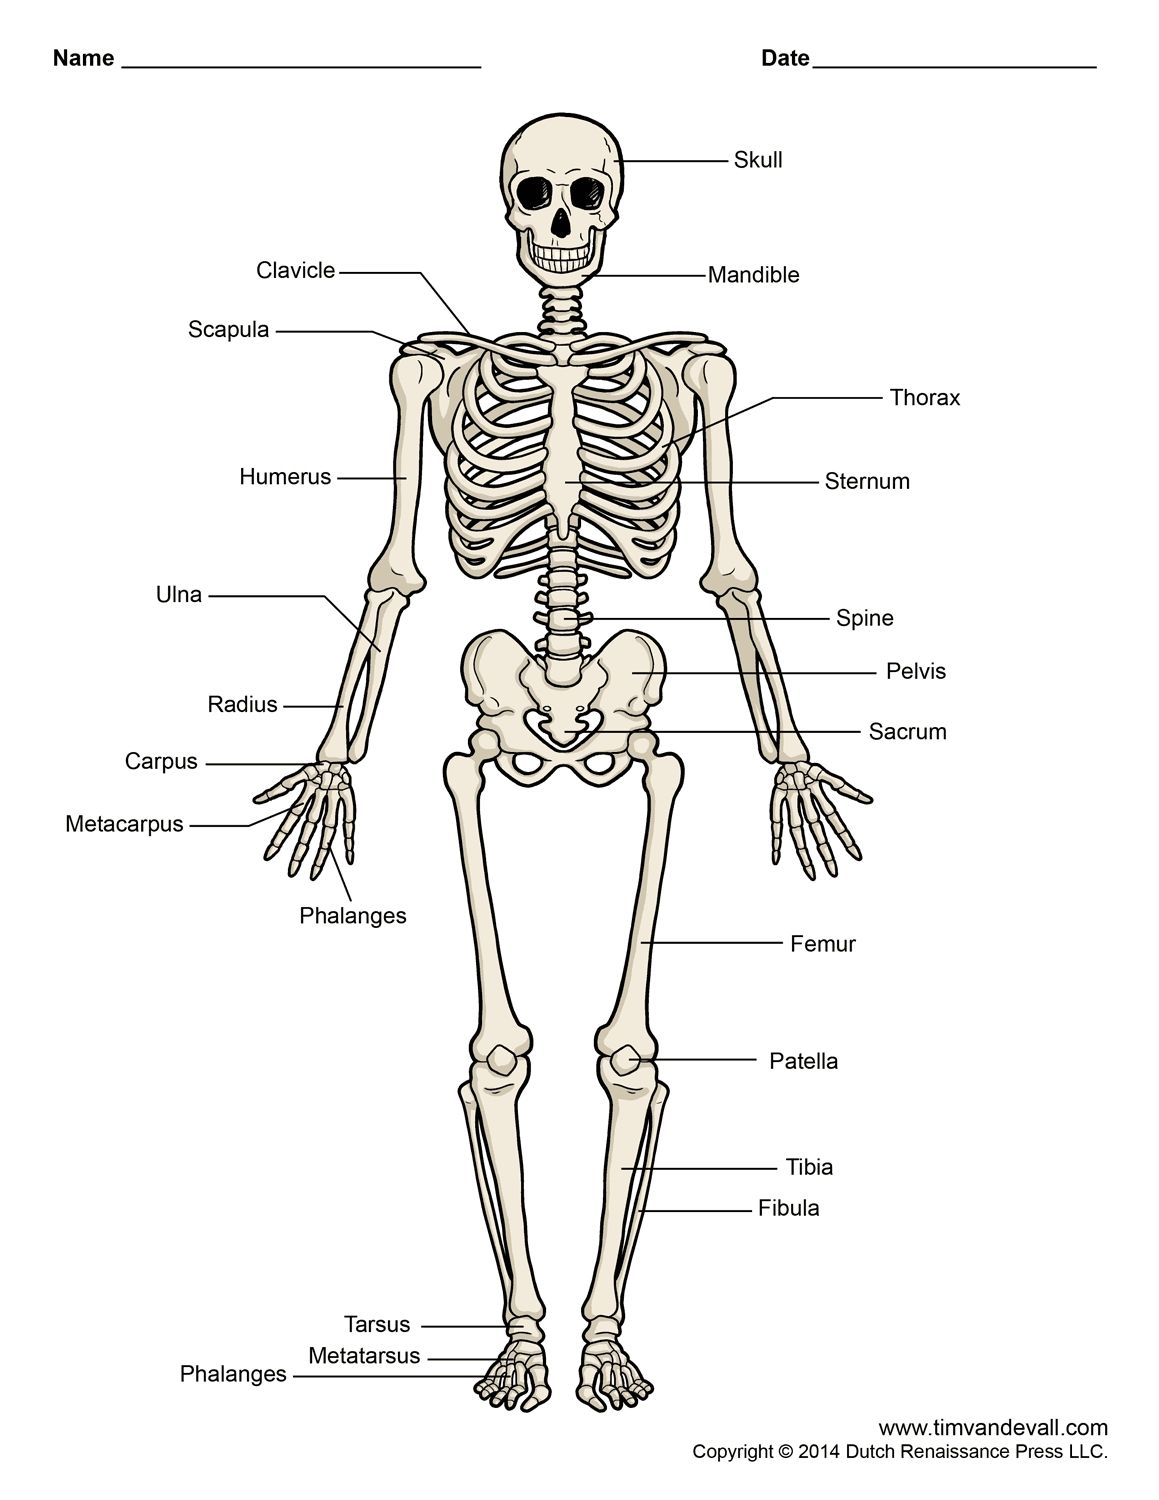 diagram of human skeleton labeled printable human skeleton diagram rh pinterest com unlabeled human skeleton diagram back printable human skeleton diagram [ 1159 x 1500 Pixel ]